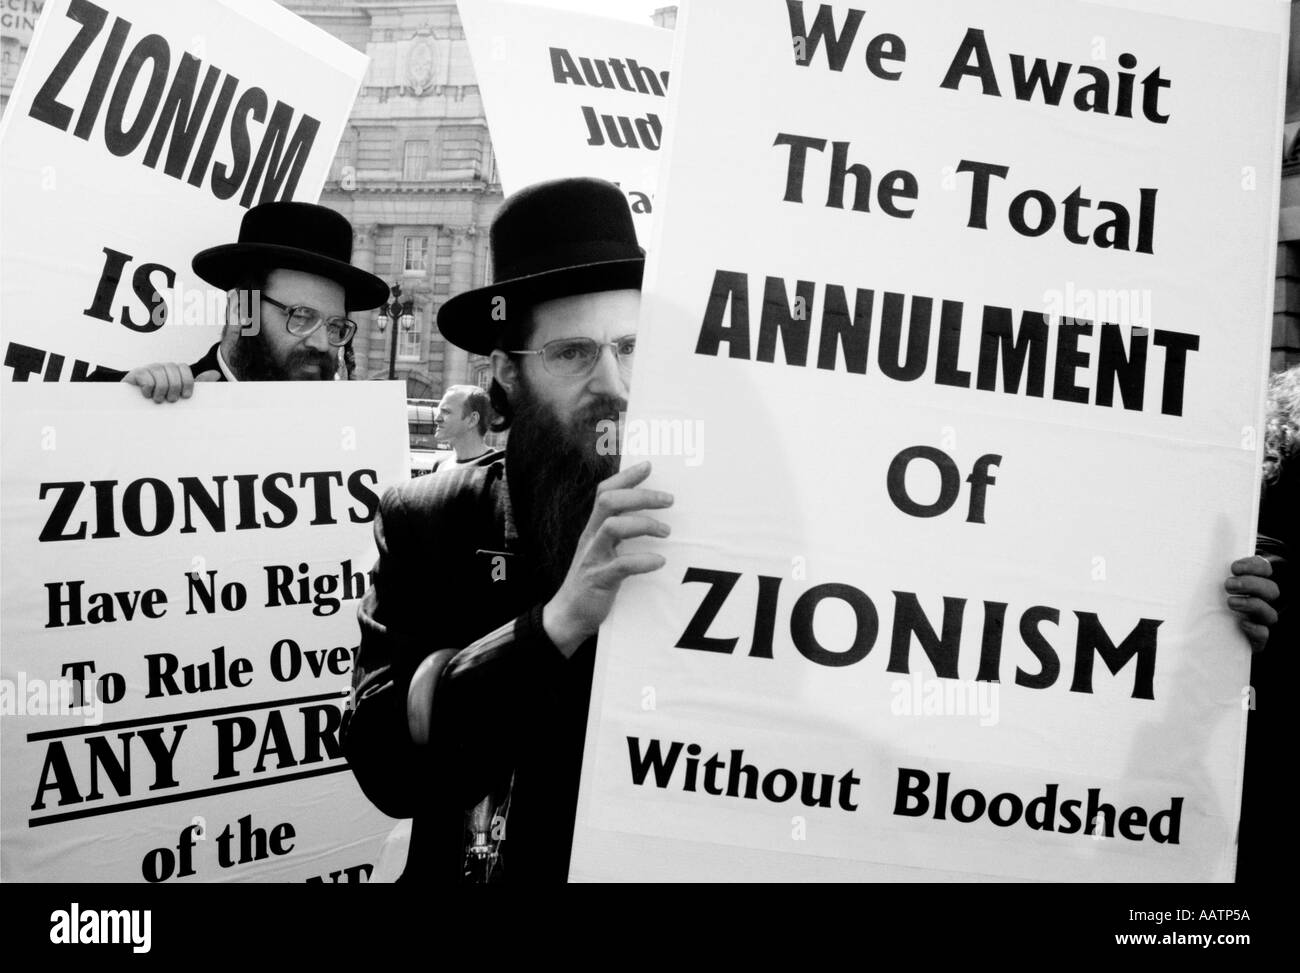 Orthodox Jews in London, England, demonstrating against Israel - Stock Image